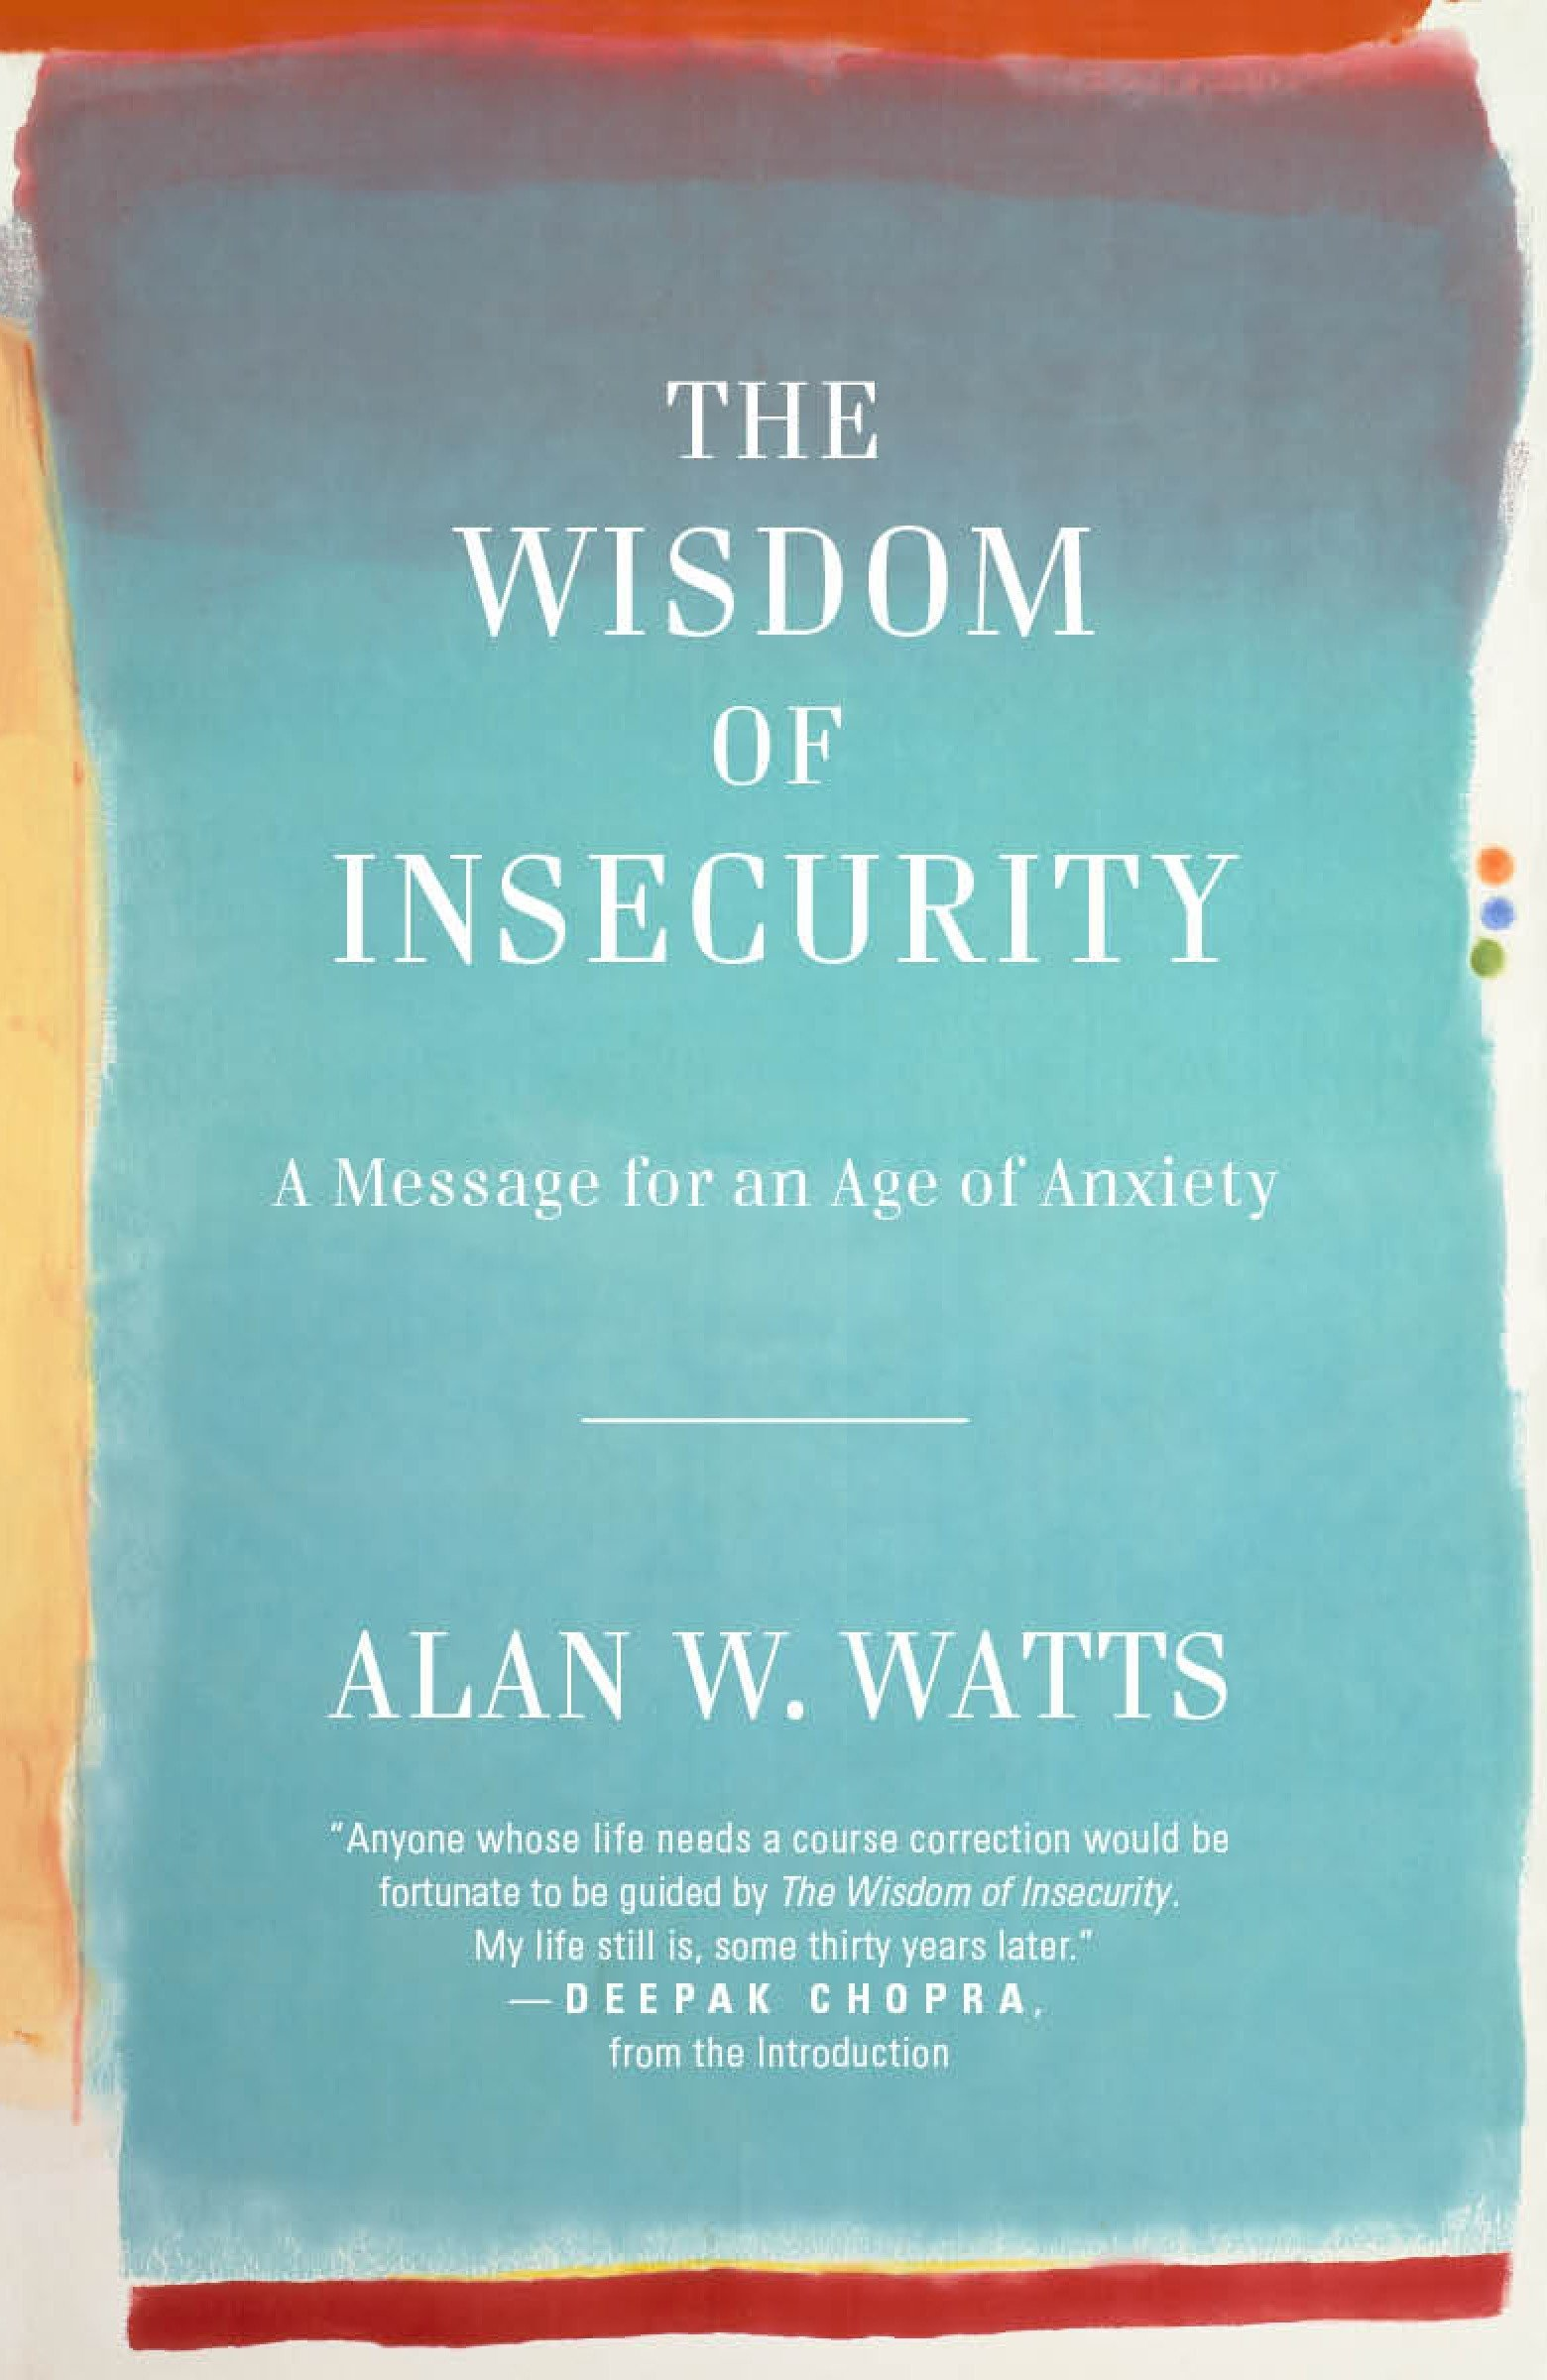 Insecurity the alan watts pdf of wisdom